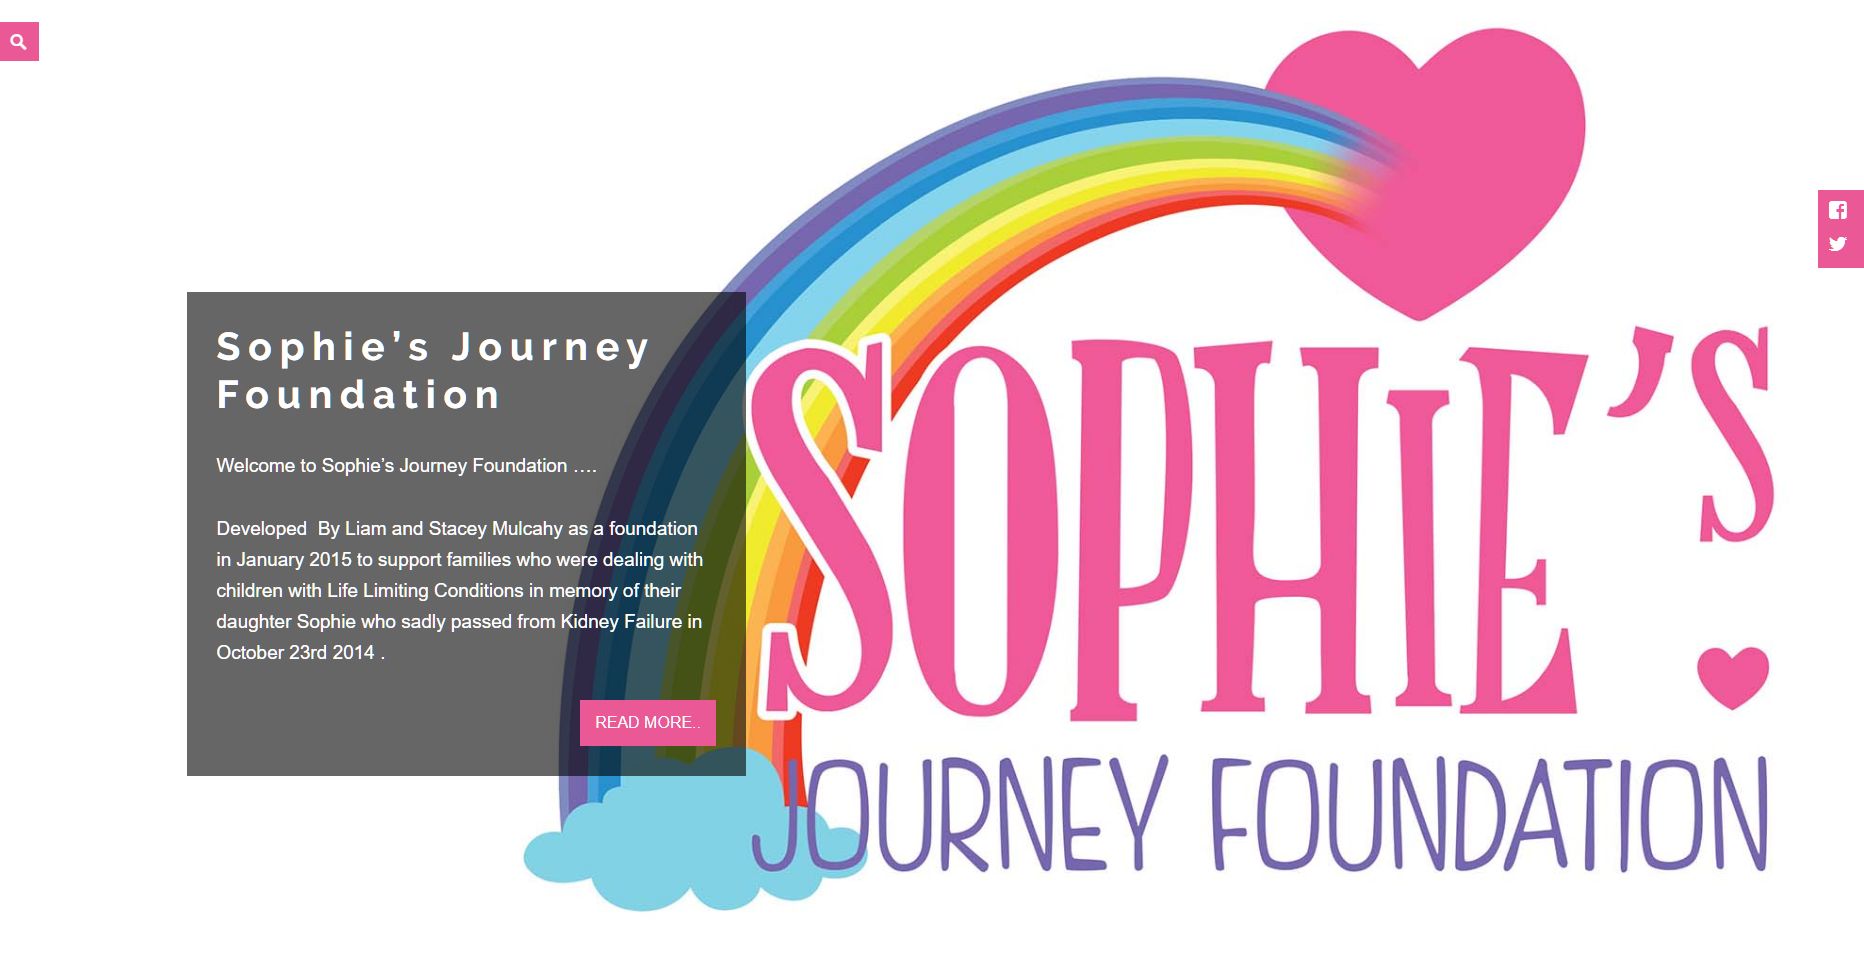 Sophie's Journey Foundation